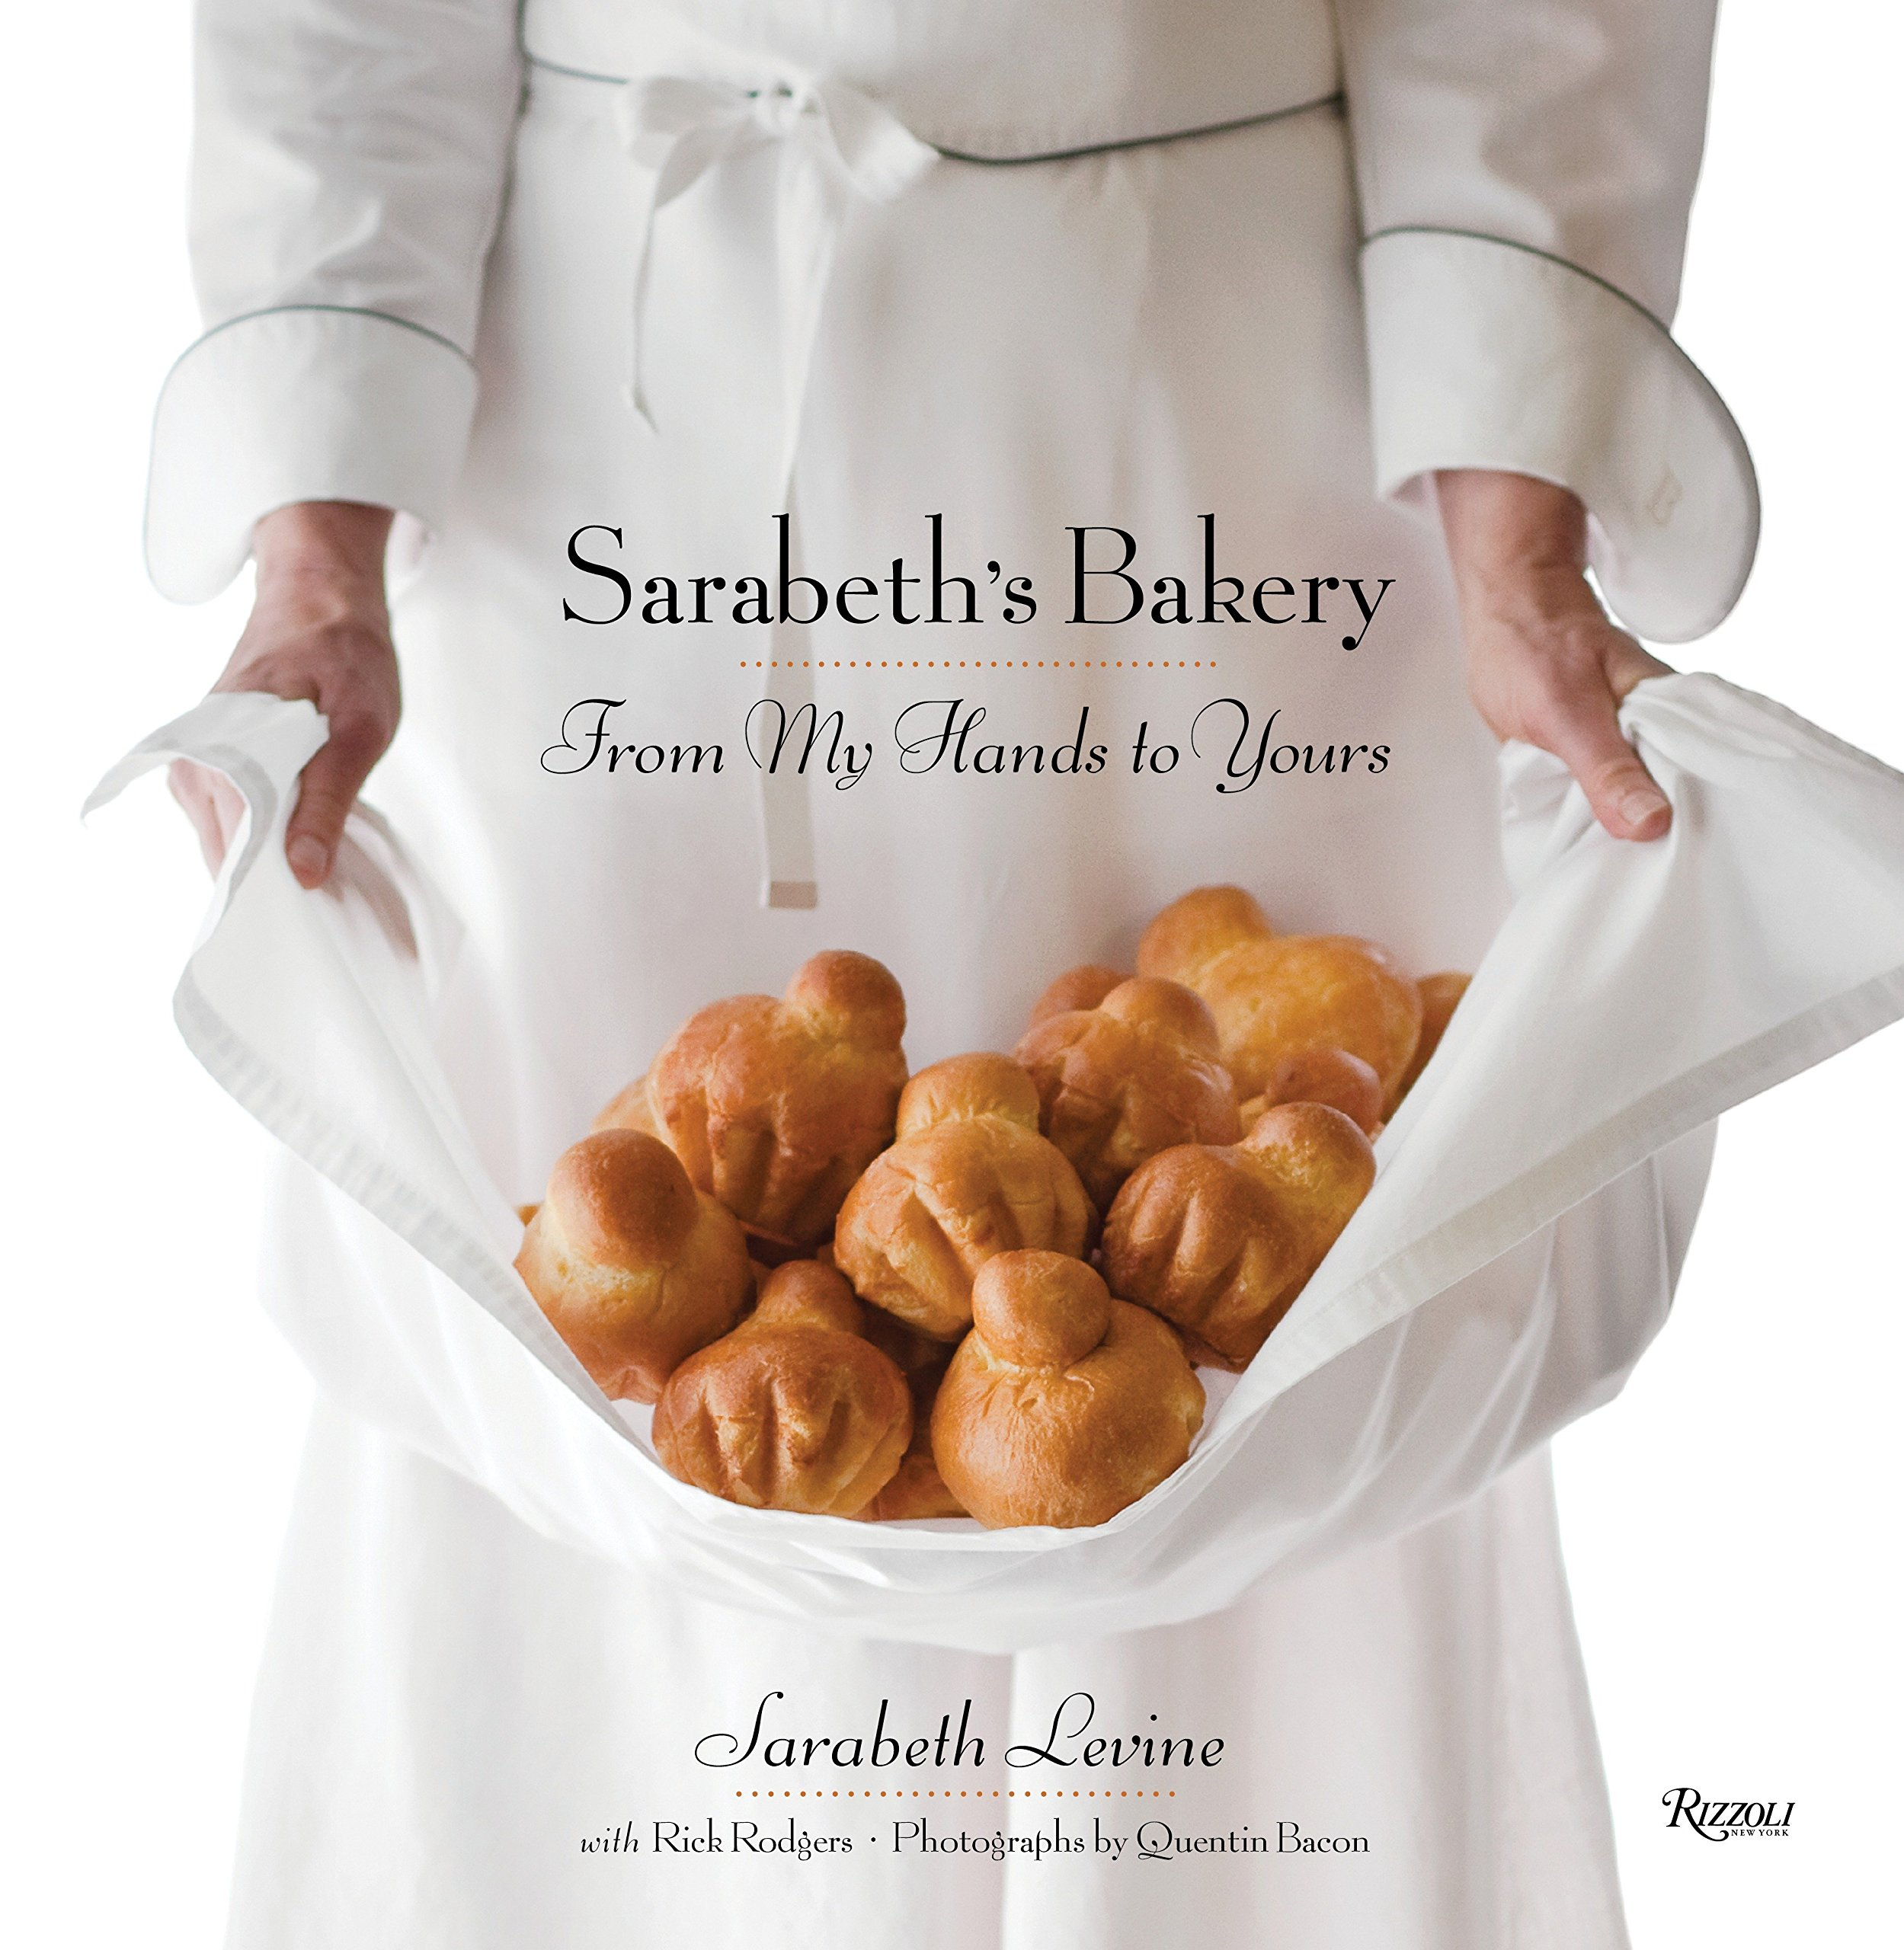 Sarabeth's Bakery: From My Hands to Yours by Rizzoli